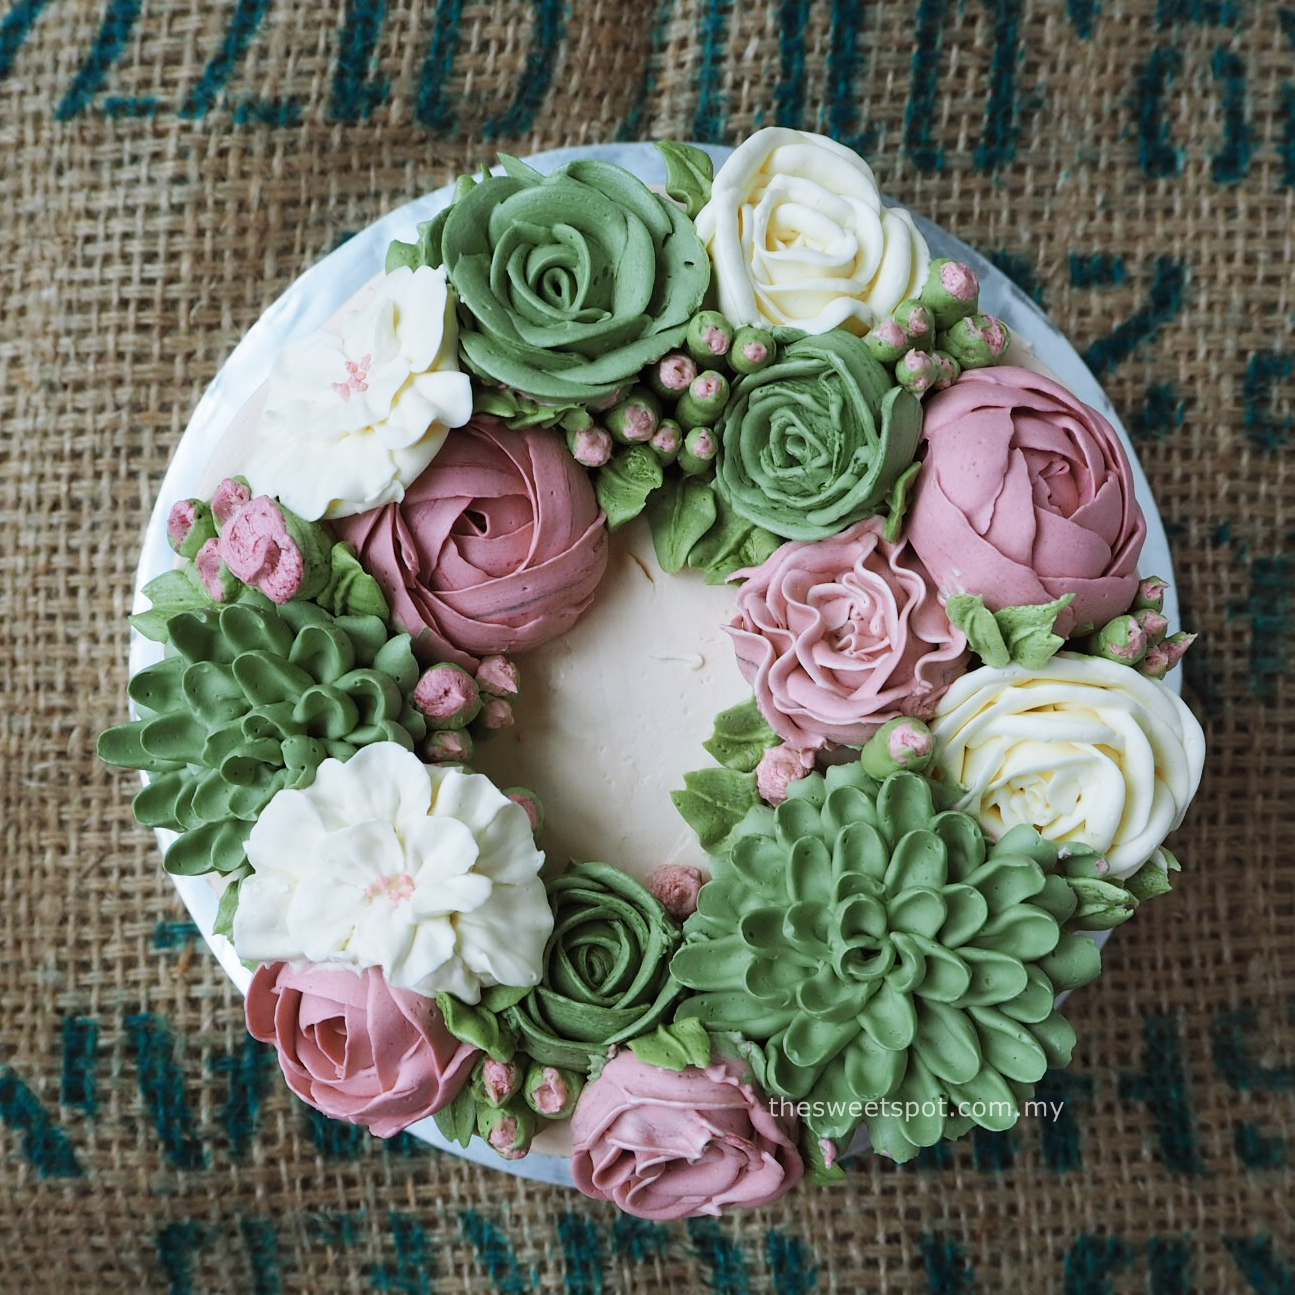 Bespoke Buttercream Flower Cakes